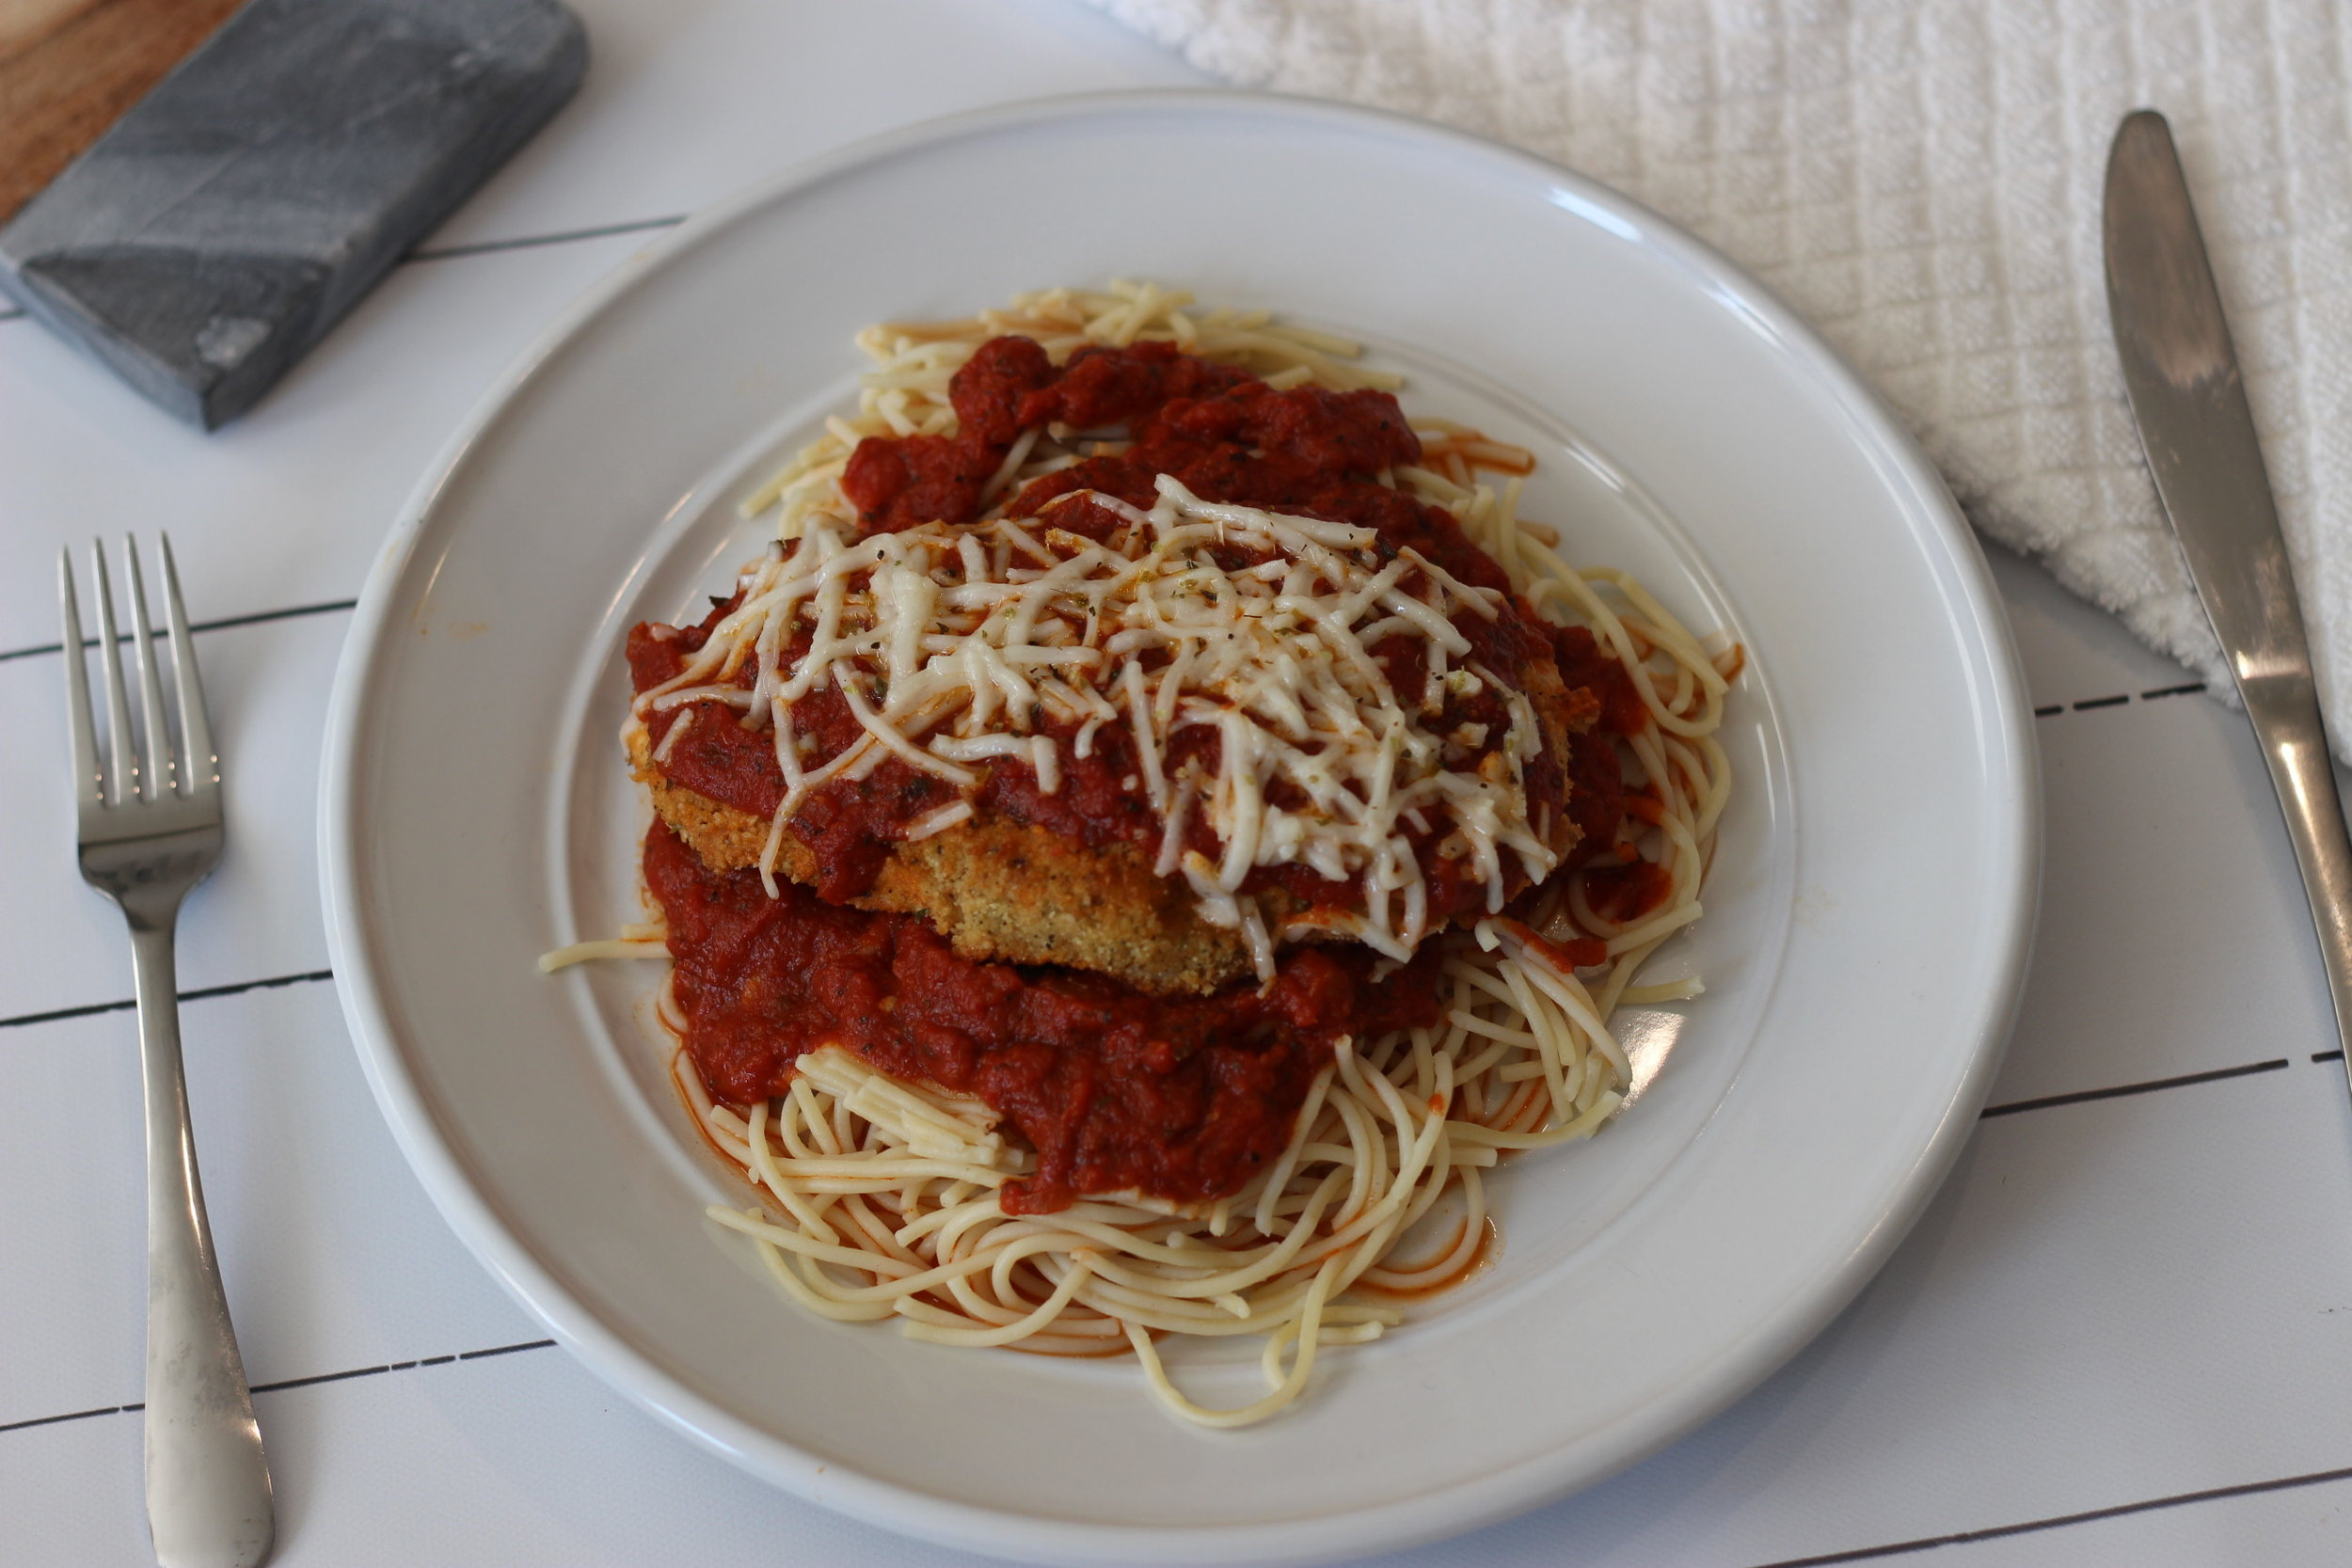 clean-eating-gluten-free-dairy-free-chicken-parm-dinner-au-courant-life.jpg